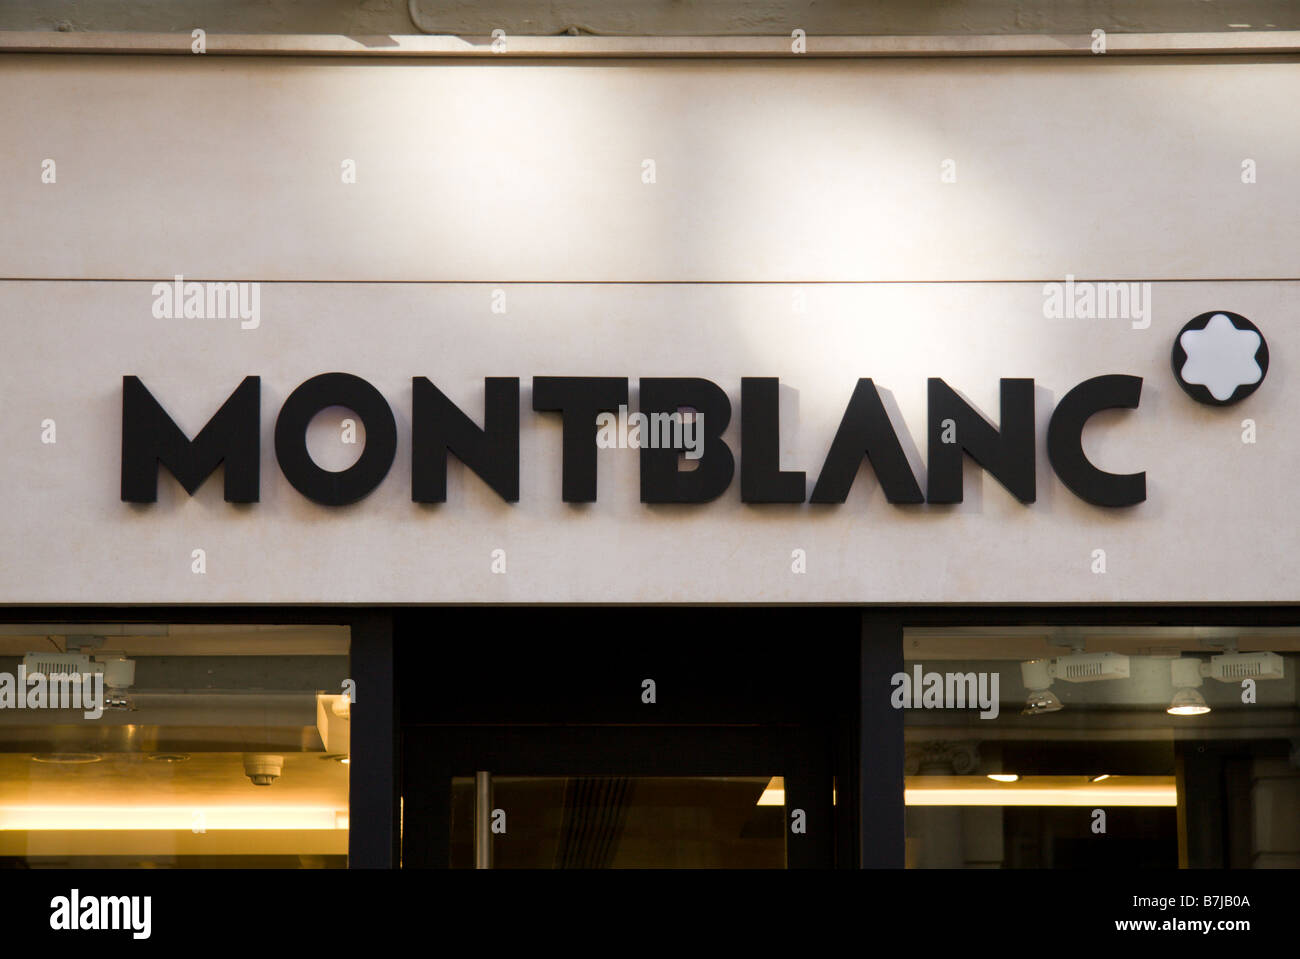 mont blanc shop sign stock photos mont blanc shop sign. Black Bedroom Furniture Sets. Home Design Ideas